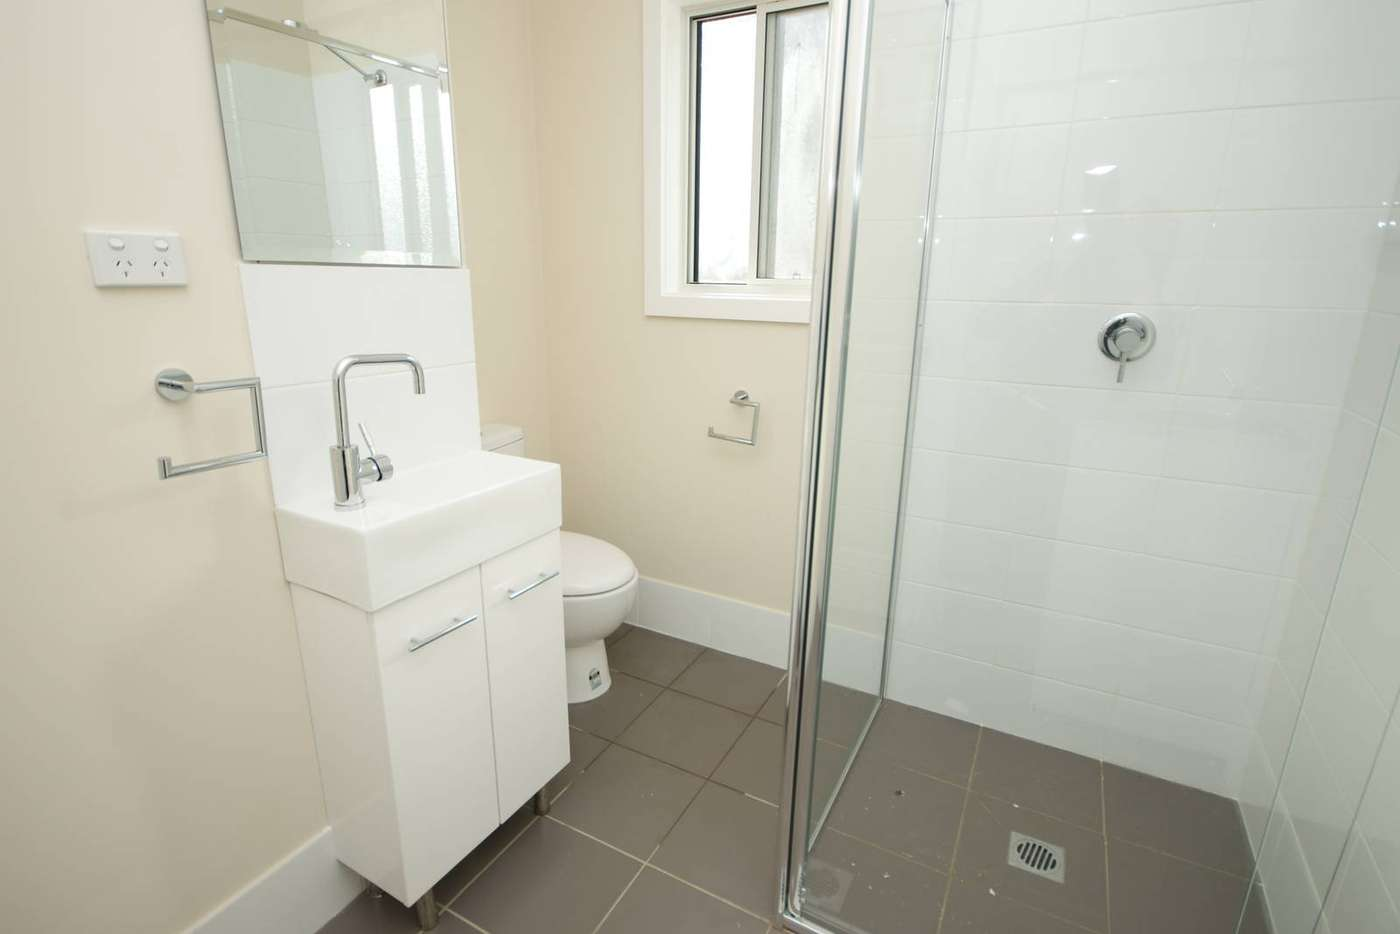 Sixth view of Homely house listing, 2a Parer Street, Kings Park NSW 2148